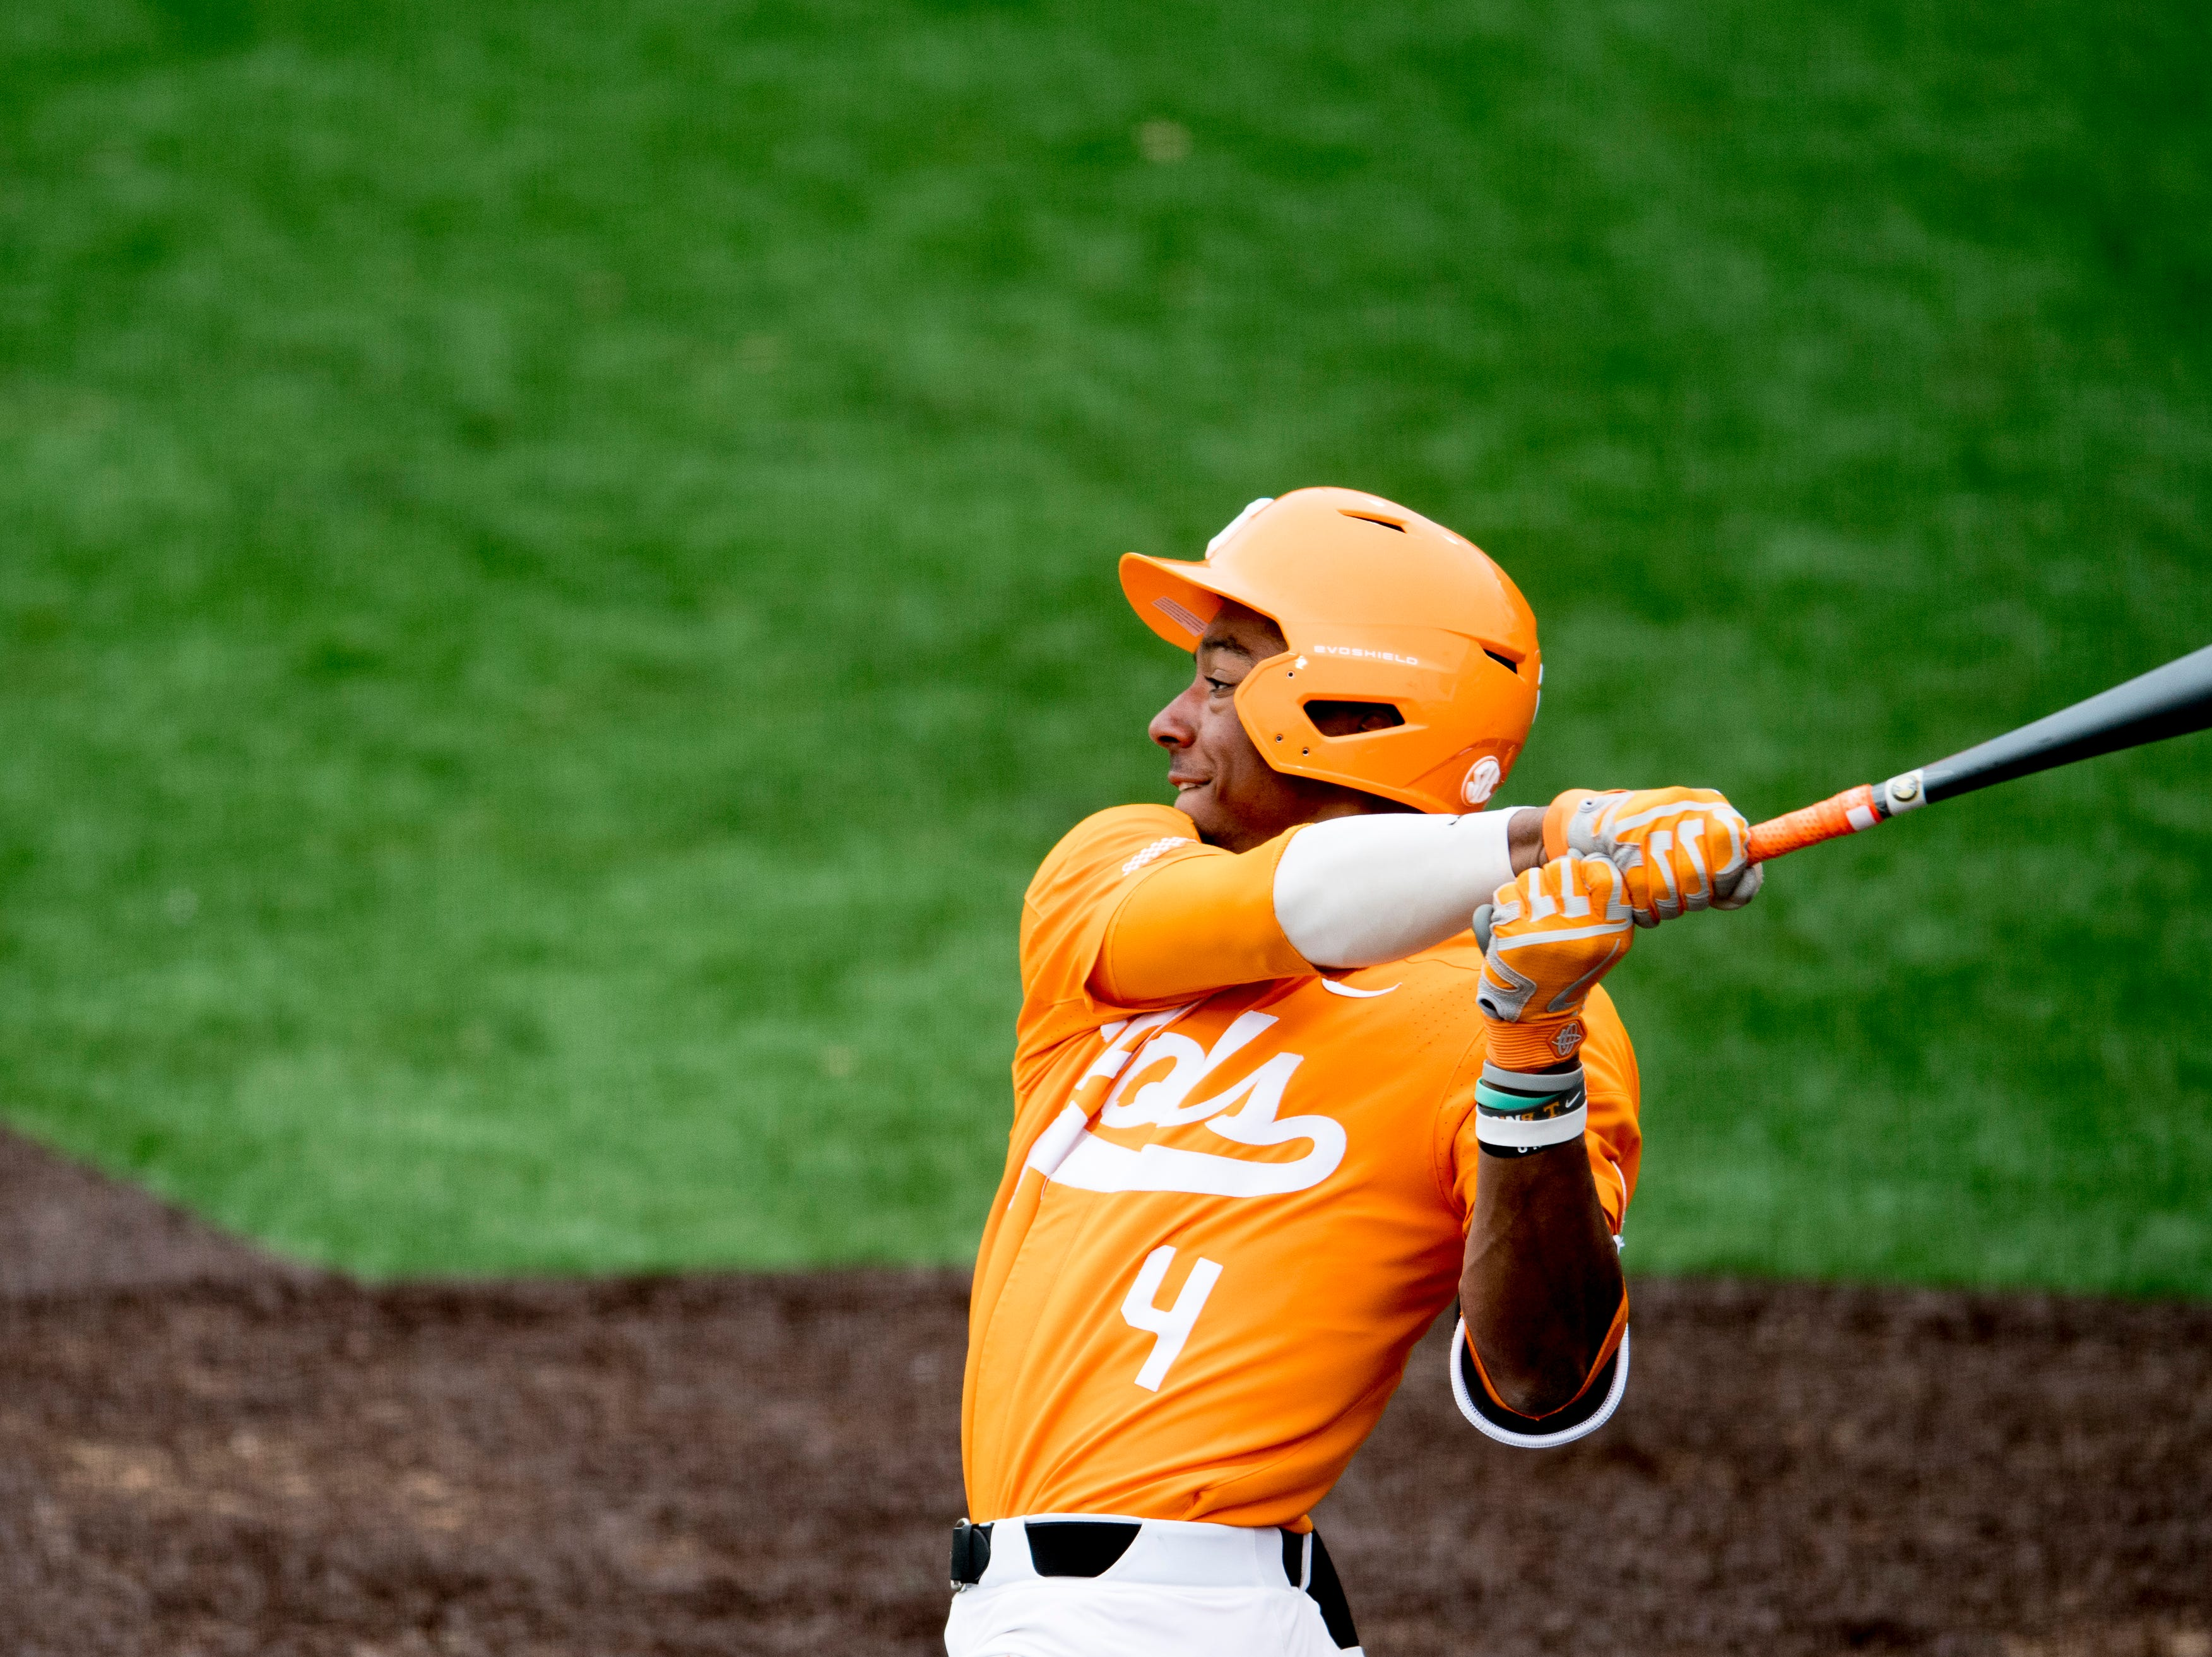 Tennessee outfielder/infielder Jay Charleston (4) swings during a Tennessee baseball home opener game against Appalachian State at Lindsey Nelson Stadium in Knoxville, Tennessee on Saturday, February 16, 2019.